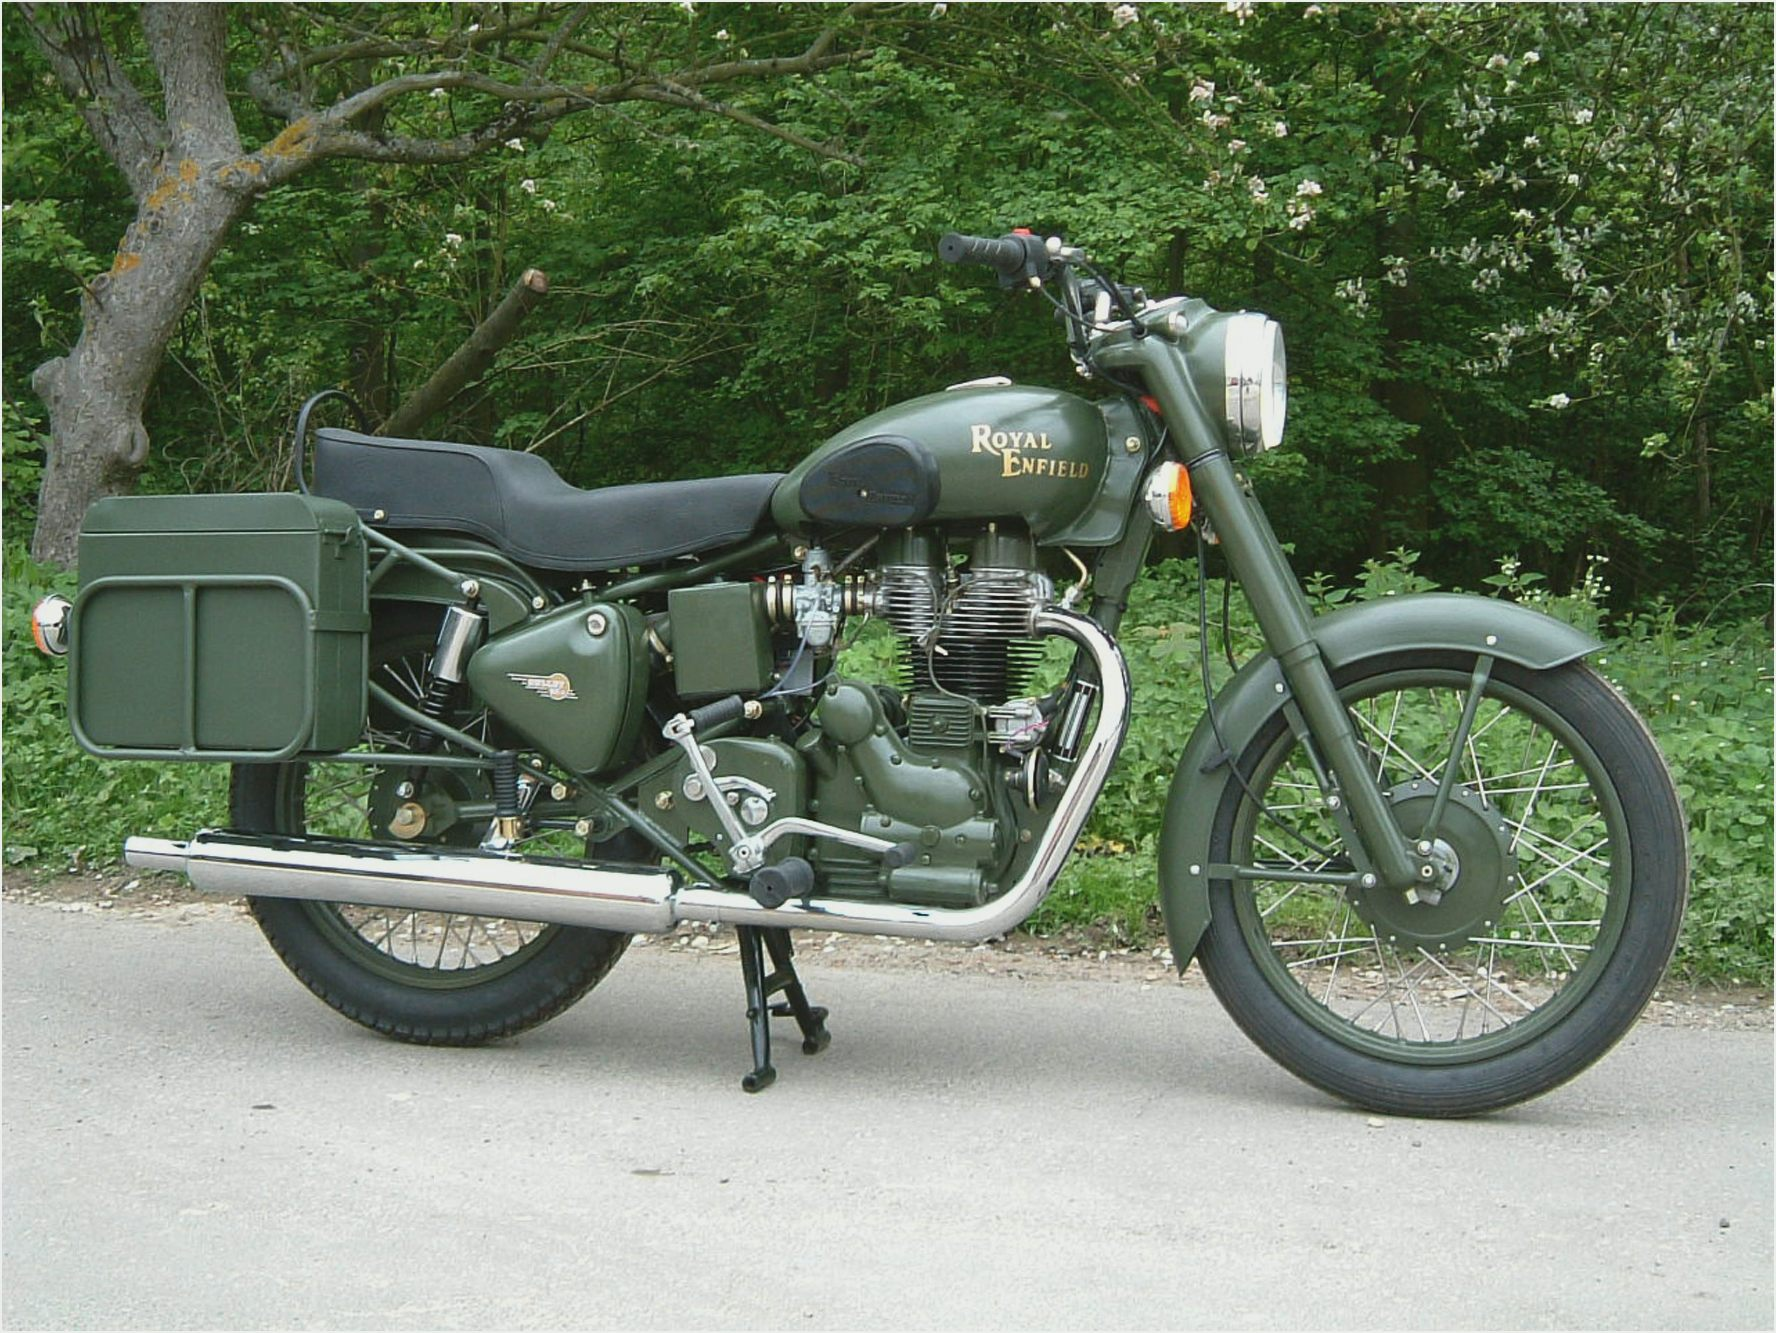 Royal Enfield Bullet 500 Army 2000 images #123241